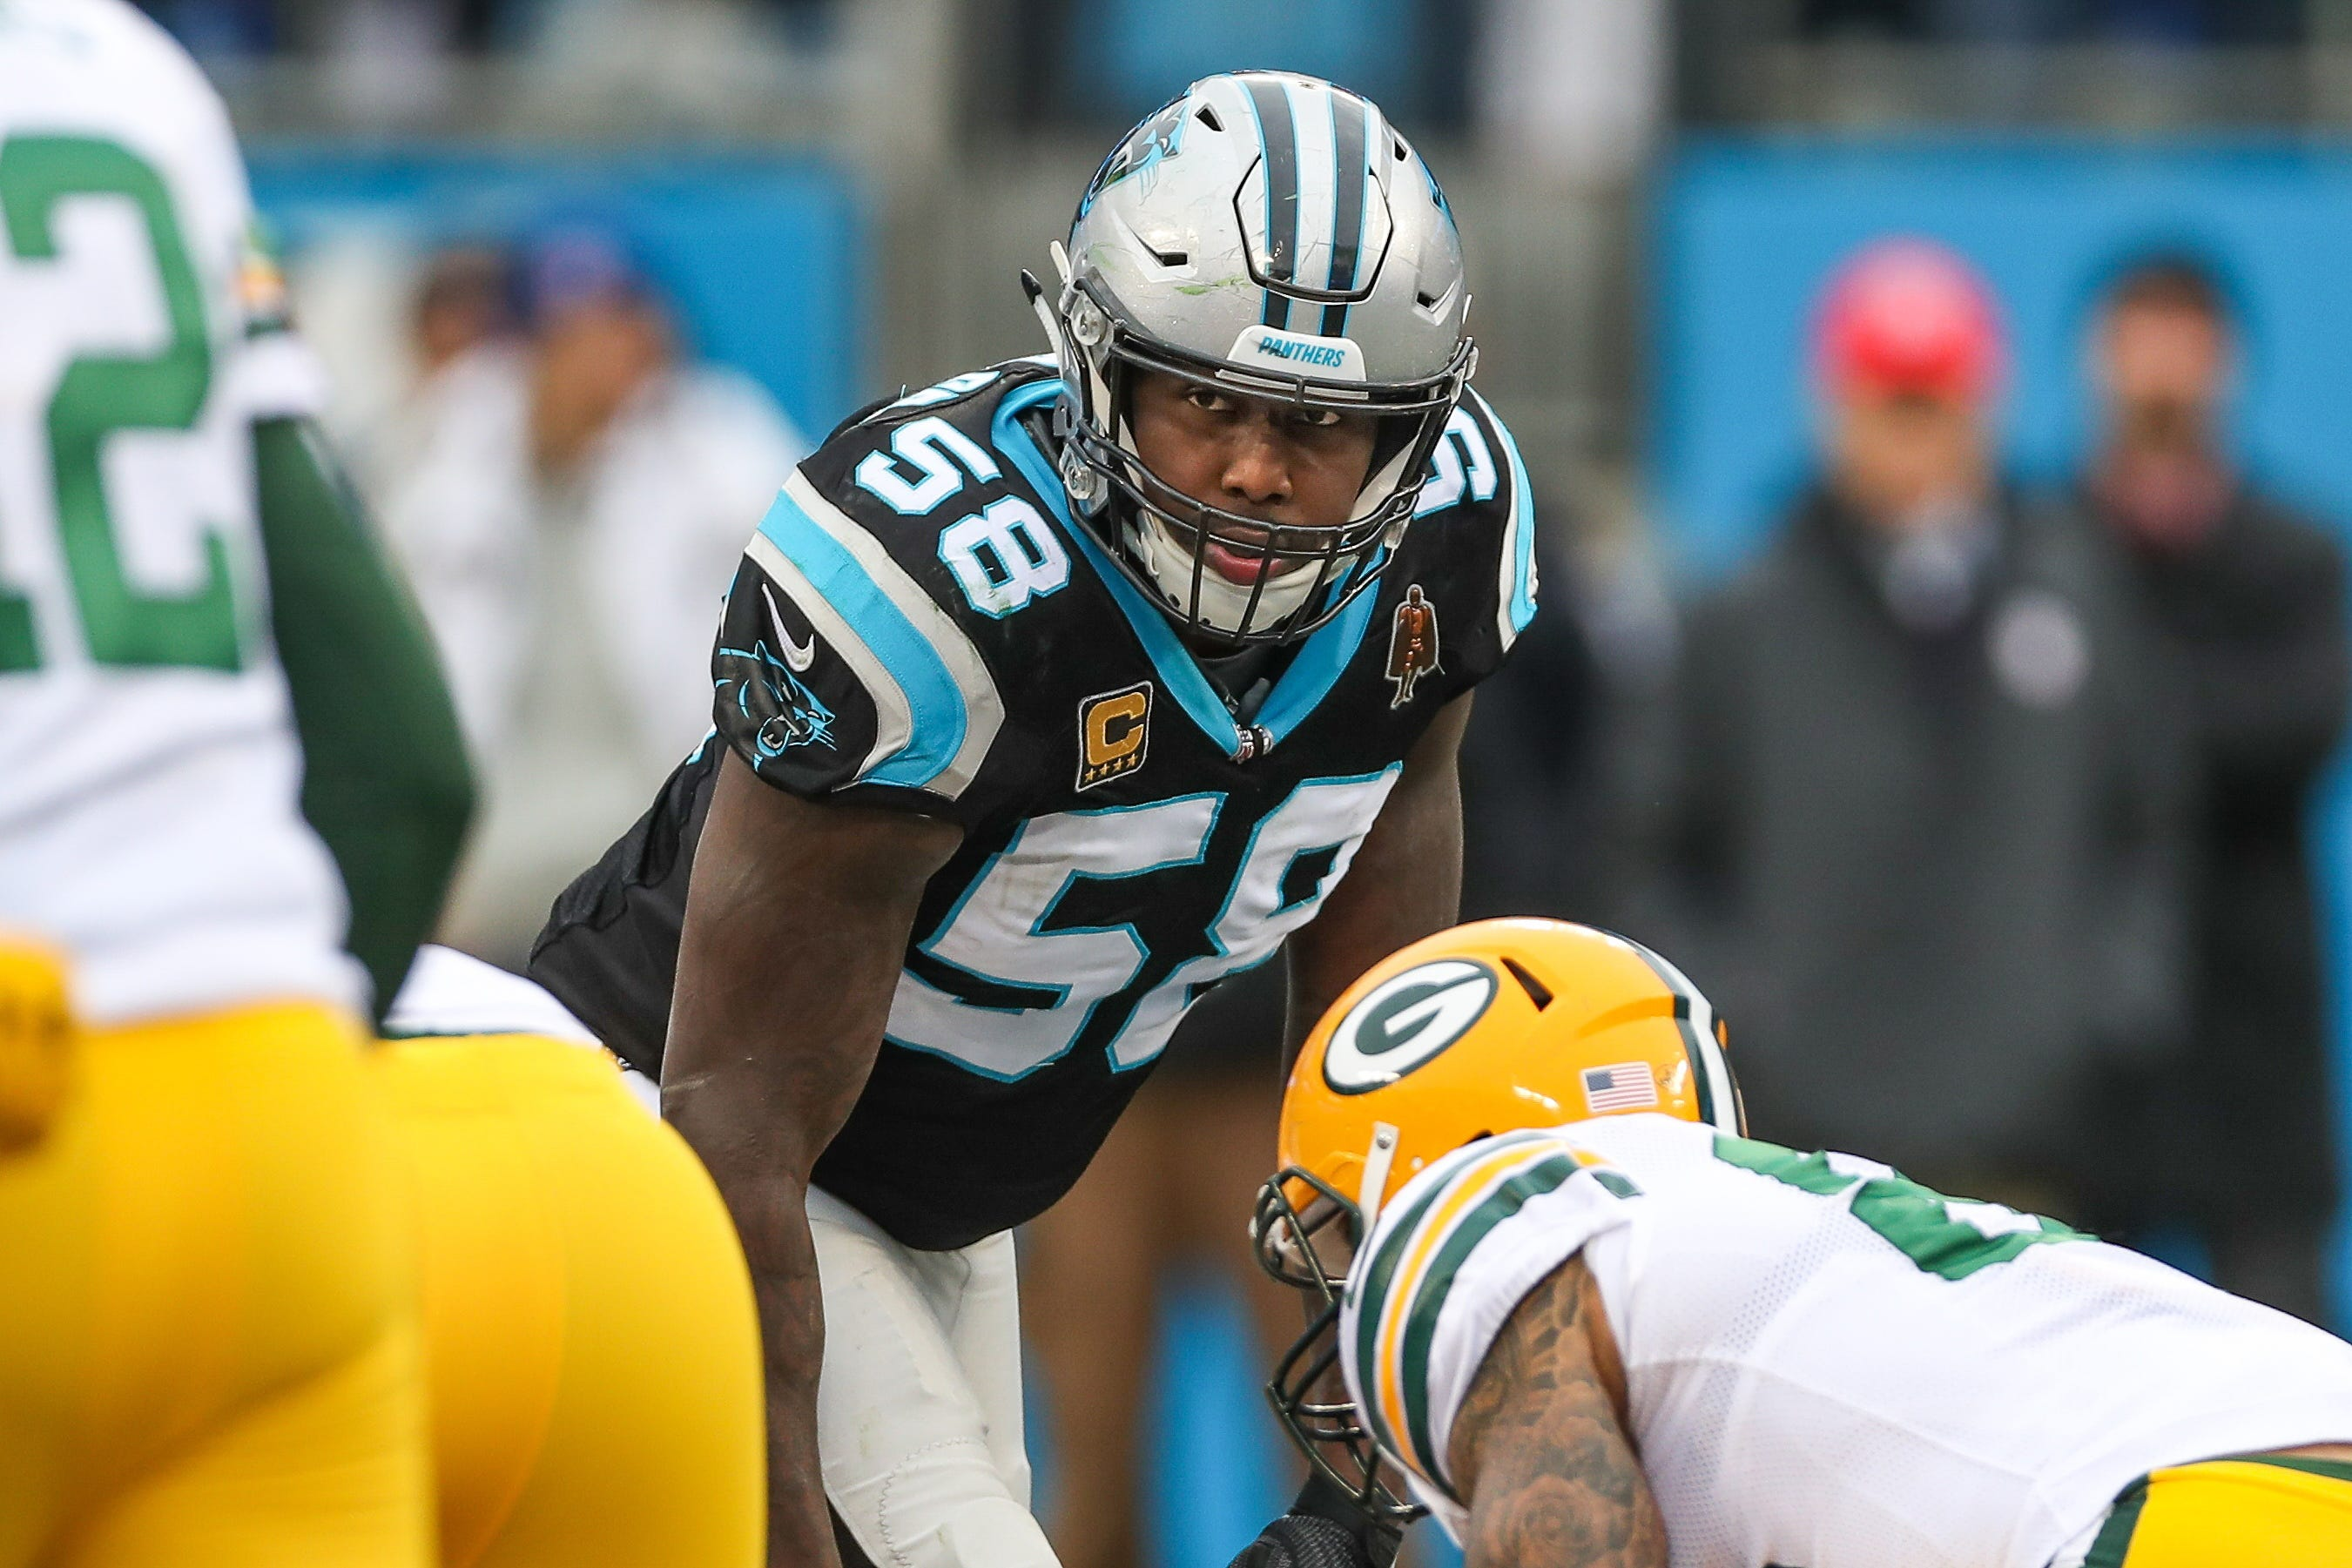 Panthers LB Thomas Davis' suspension reduced to one game on appeal